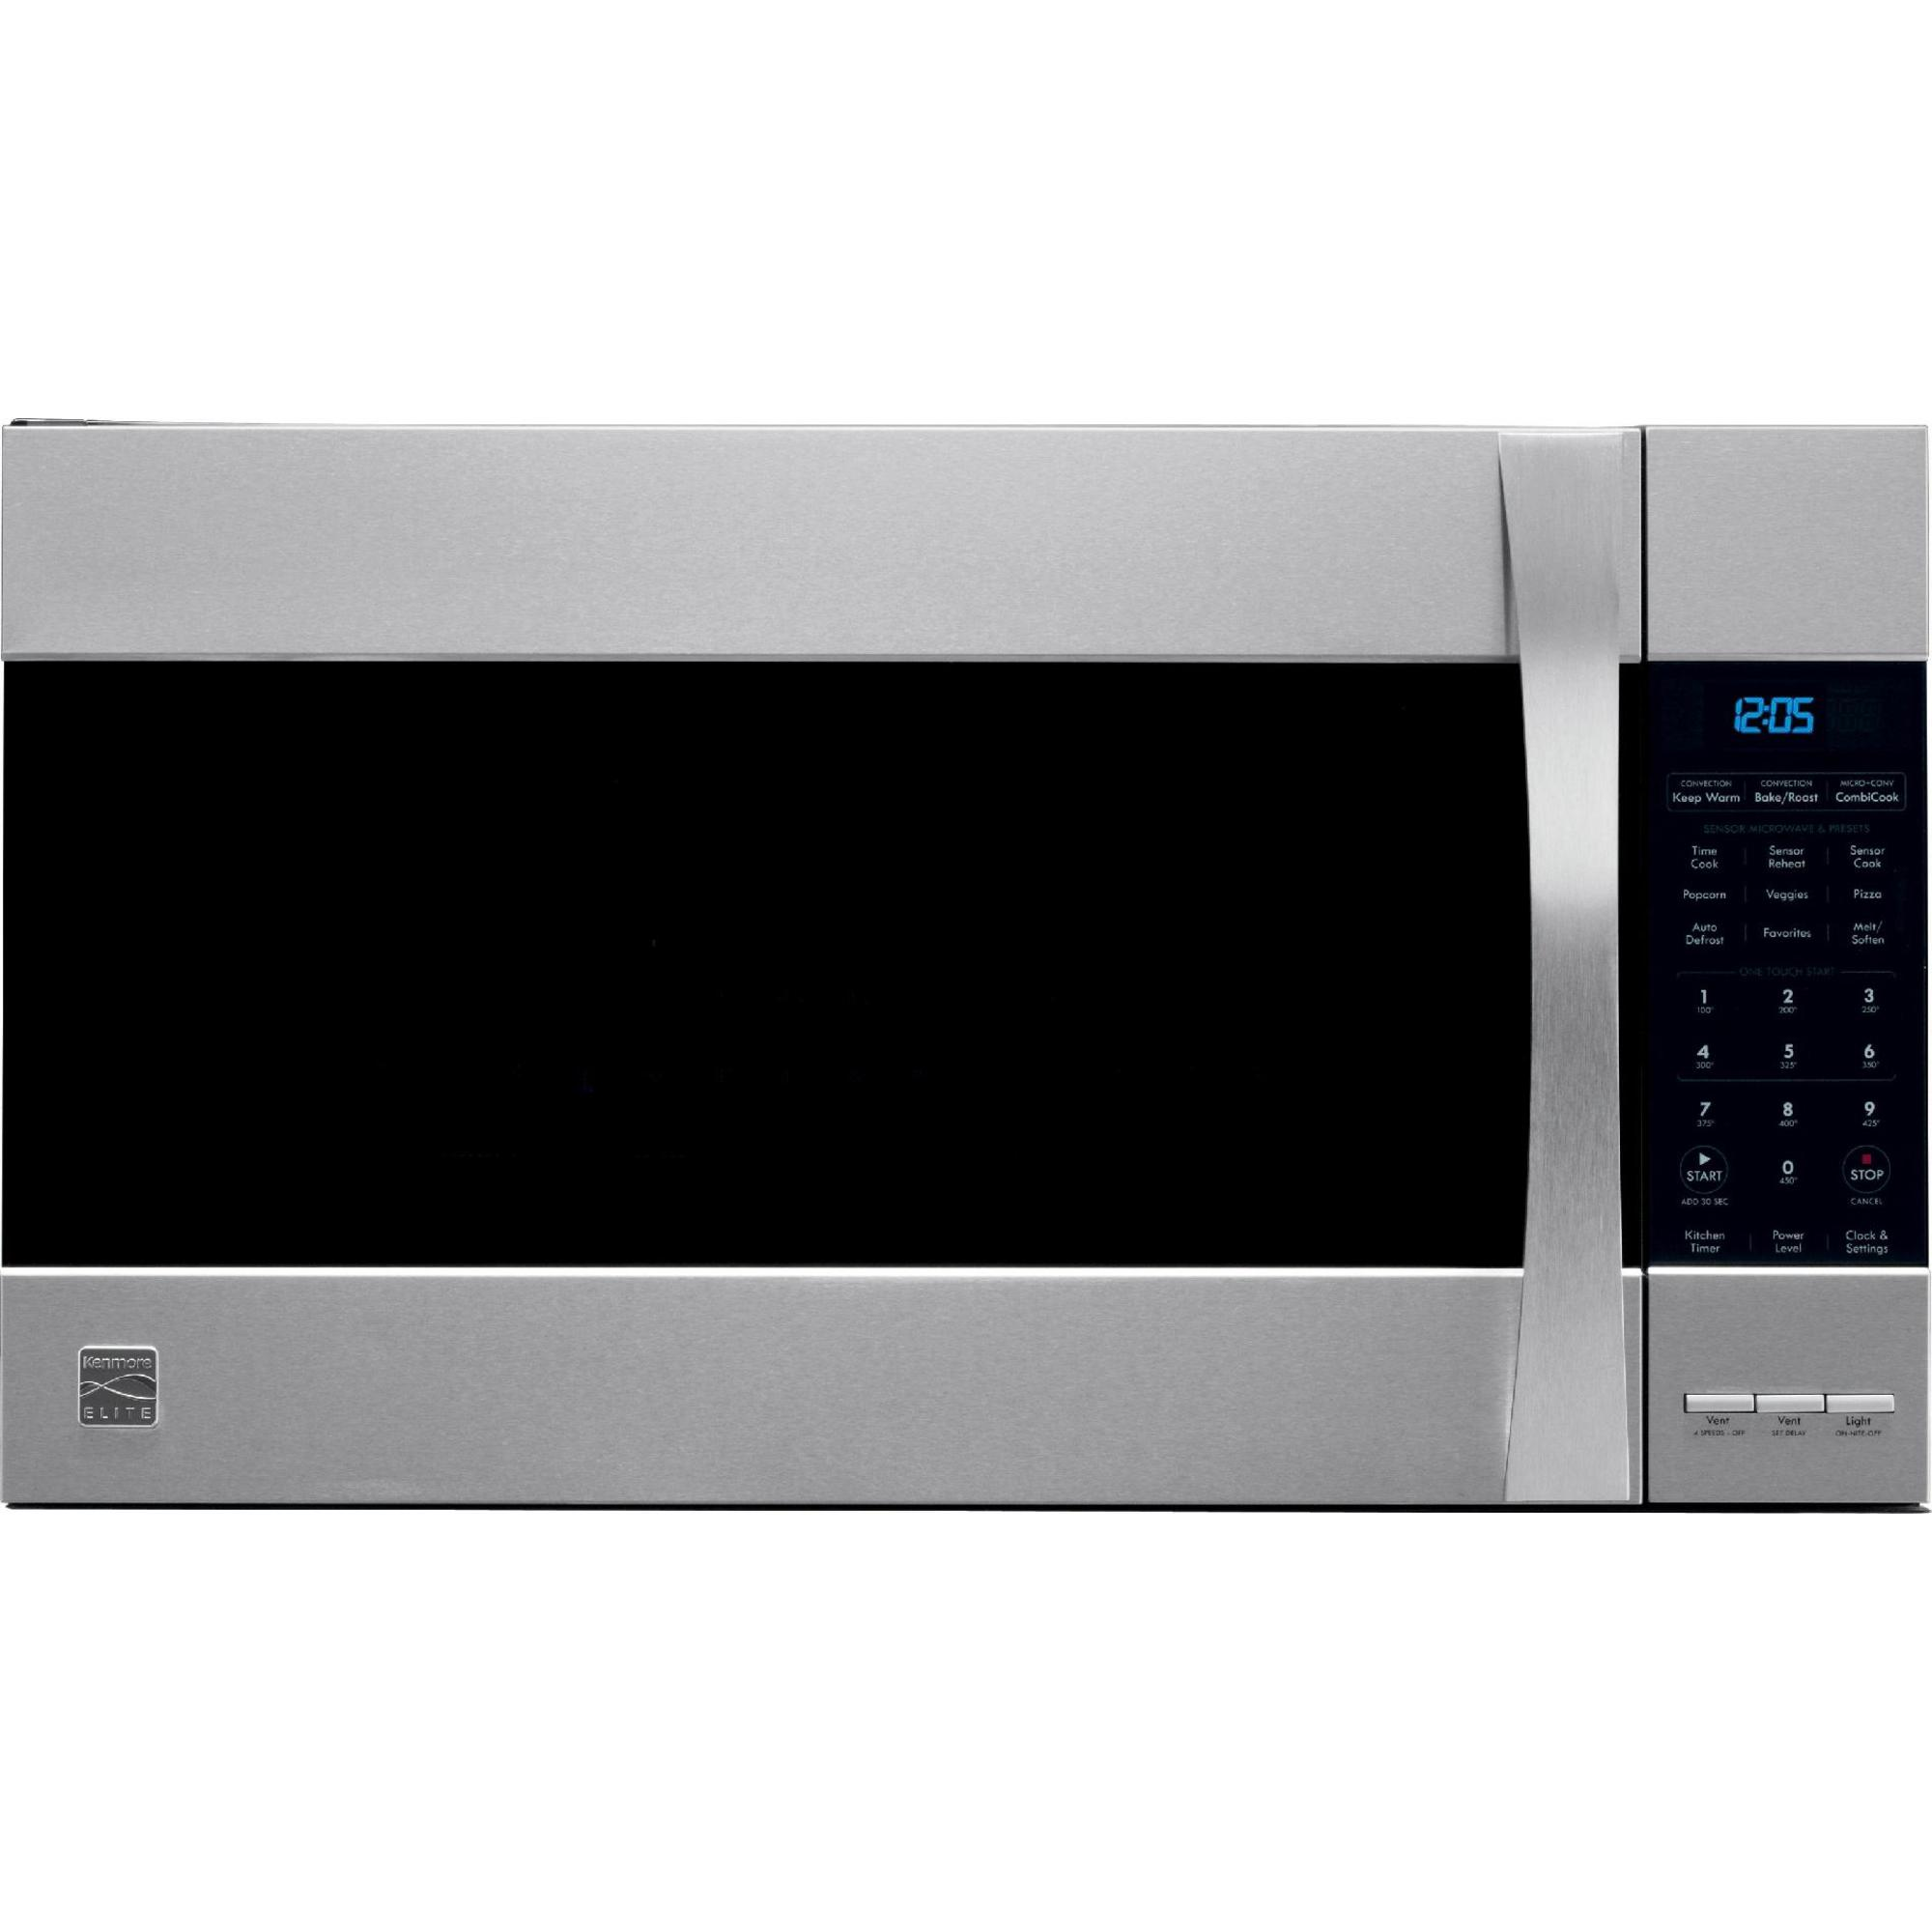 Kenmore Elite 1 8 Cu Ft Over The Range Convection Microwave Better Cooking Flexibilityget D Over The Range Microwaves Kenmore Elite Stainless Steel Microwave